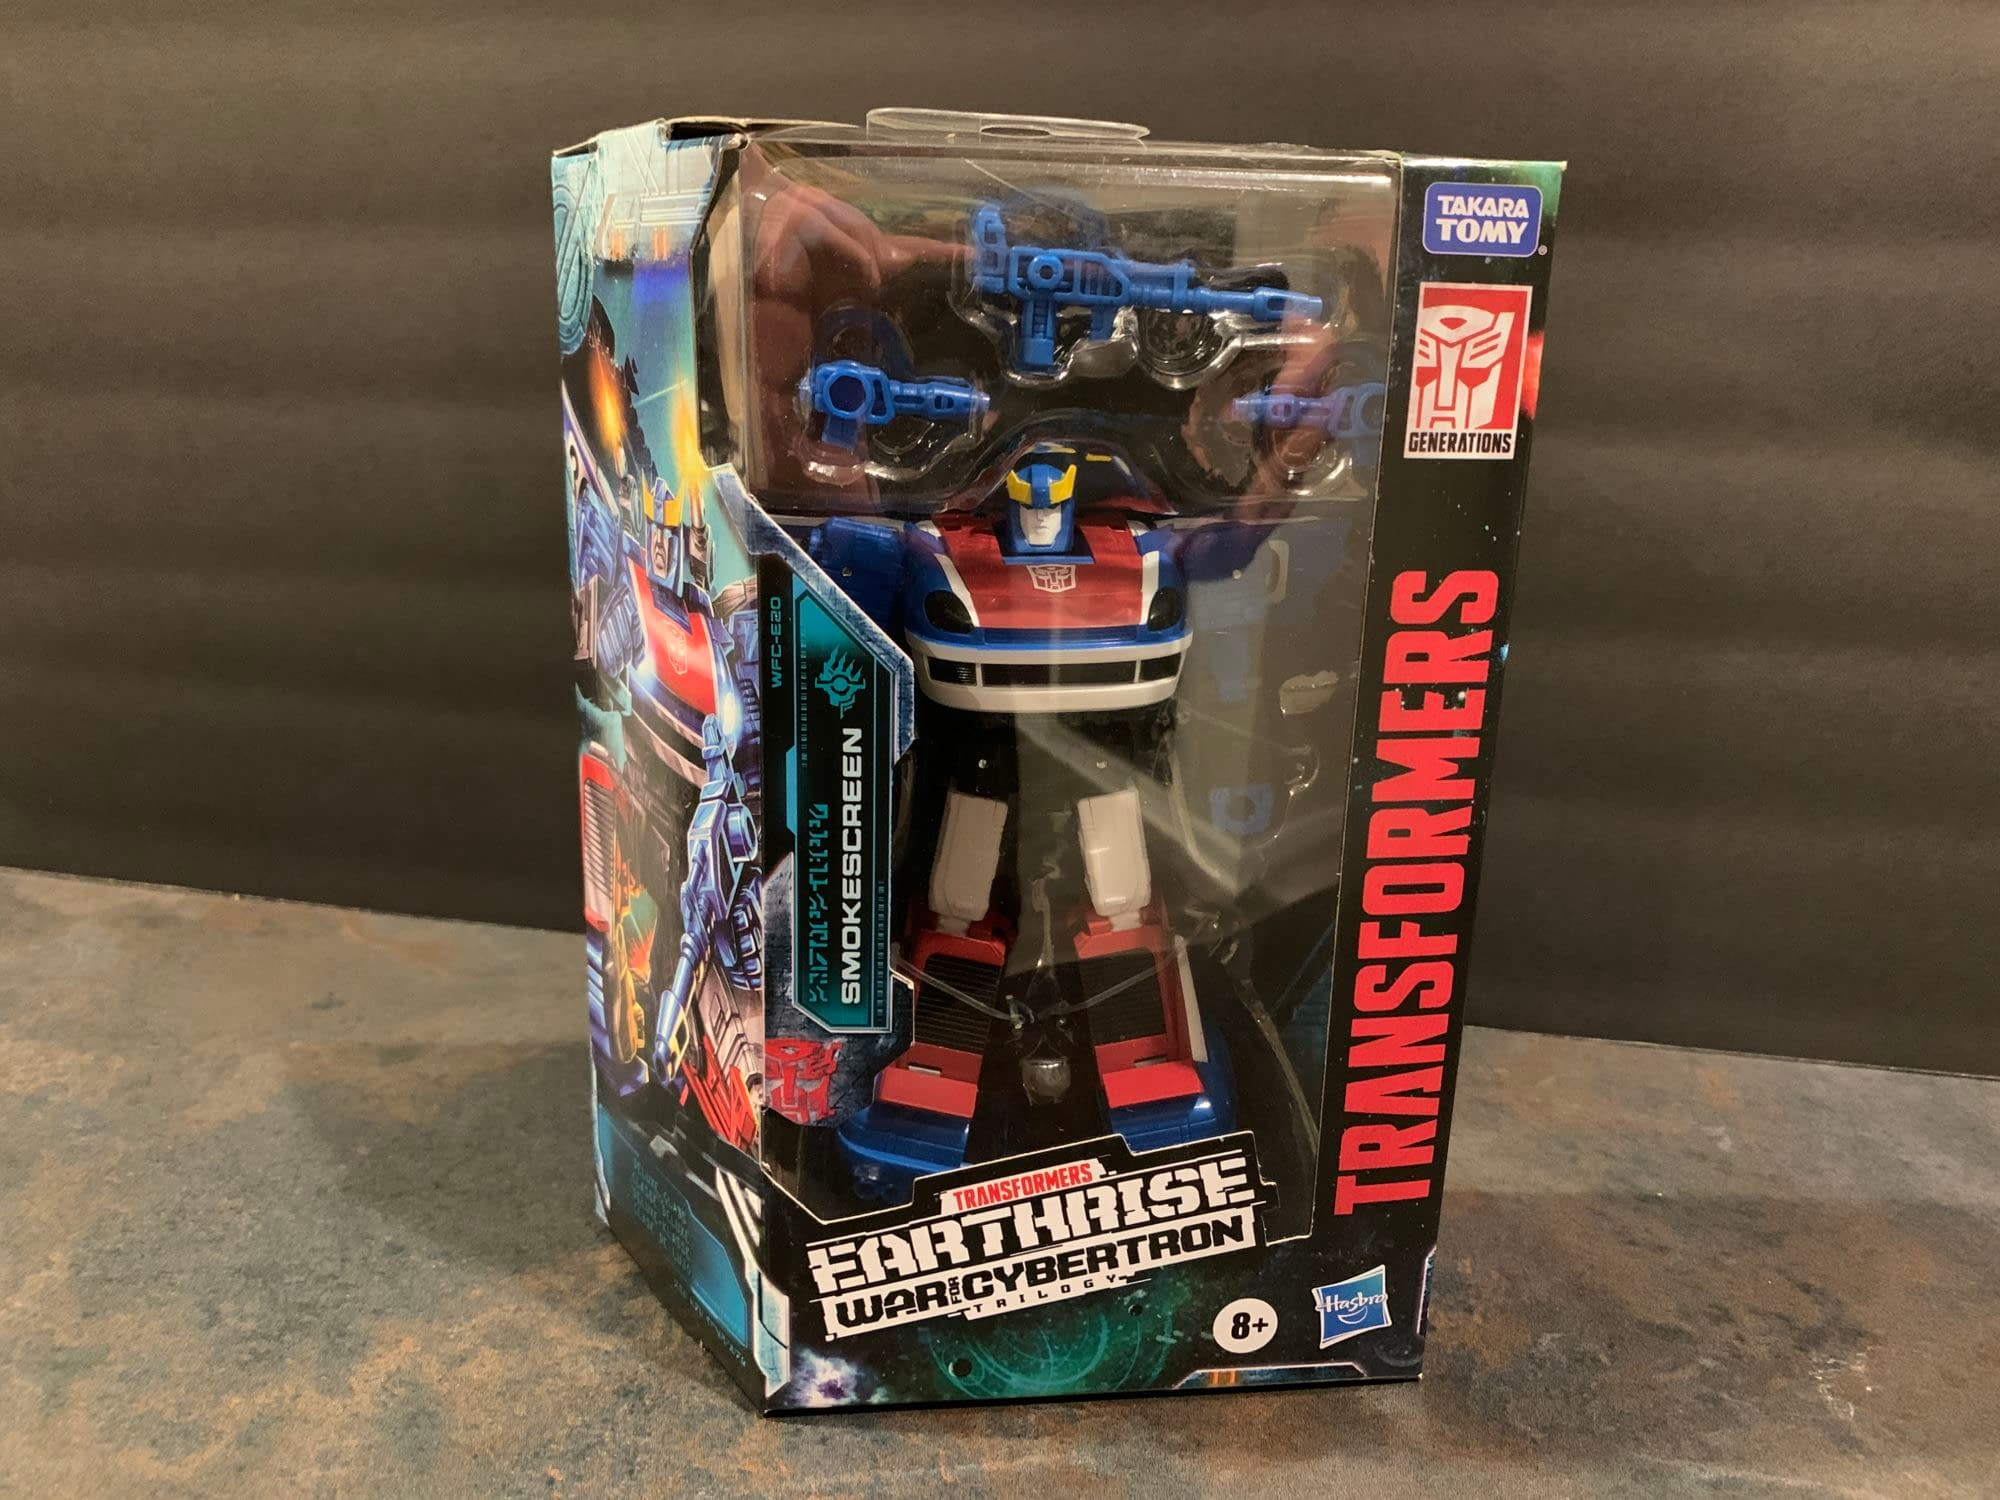 Hasbro Sent Us A Bunch Of Transformers, Let's Look At Them